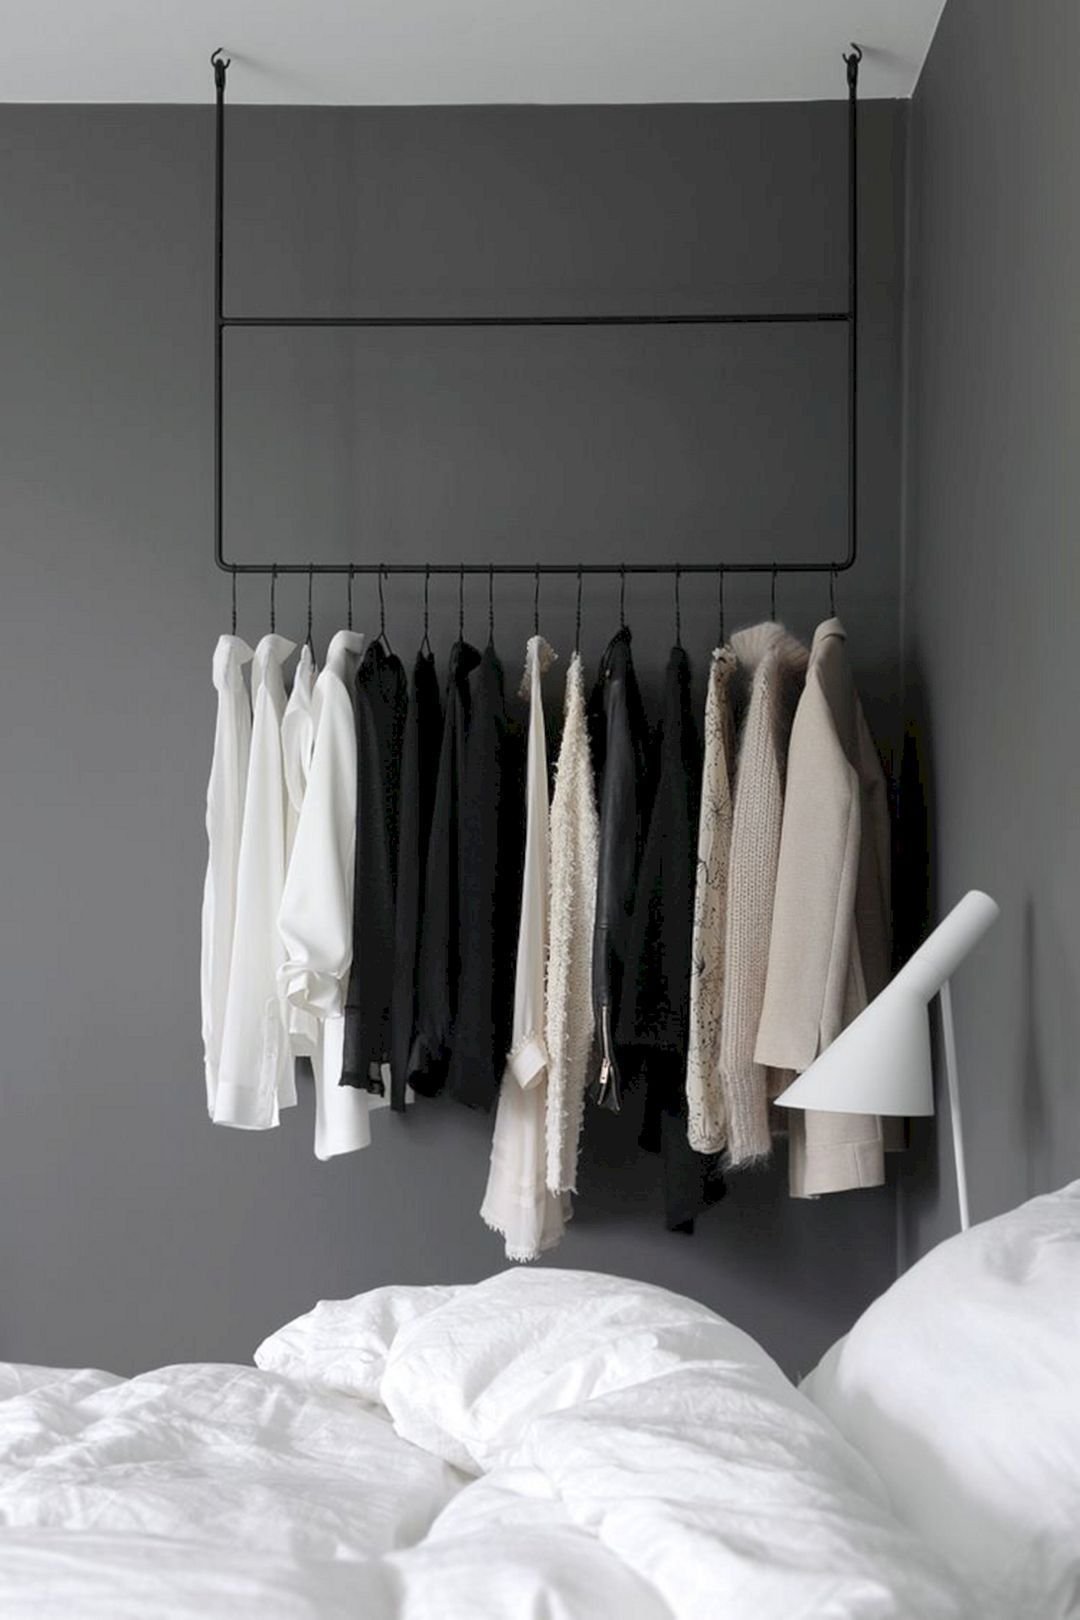 Aesthetic White Bedrooms Tumblr Aesthetic White Bedrooms Tumblr Design Ideas And Photos Clothing Rack Bedroom Bedroom Interior Minimalist Bedroom